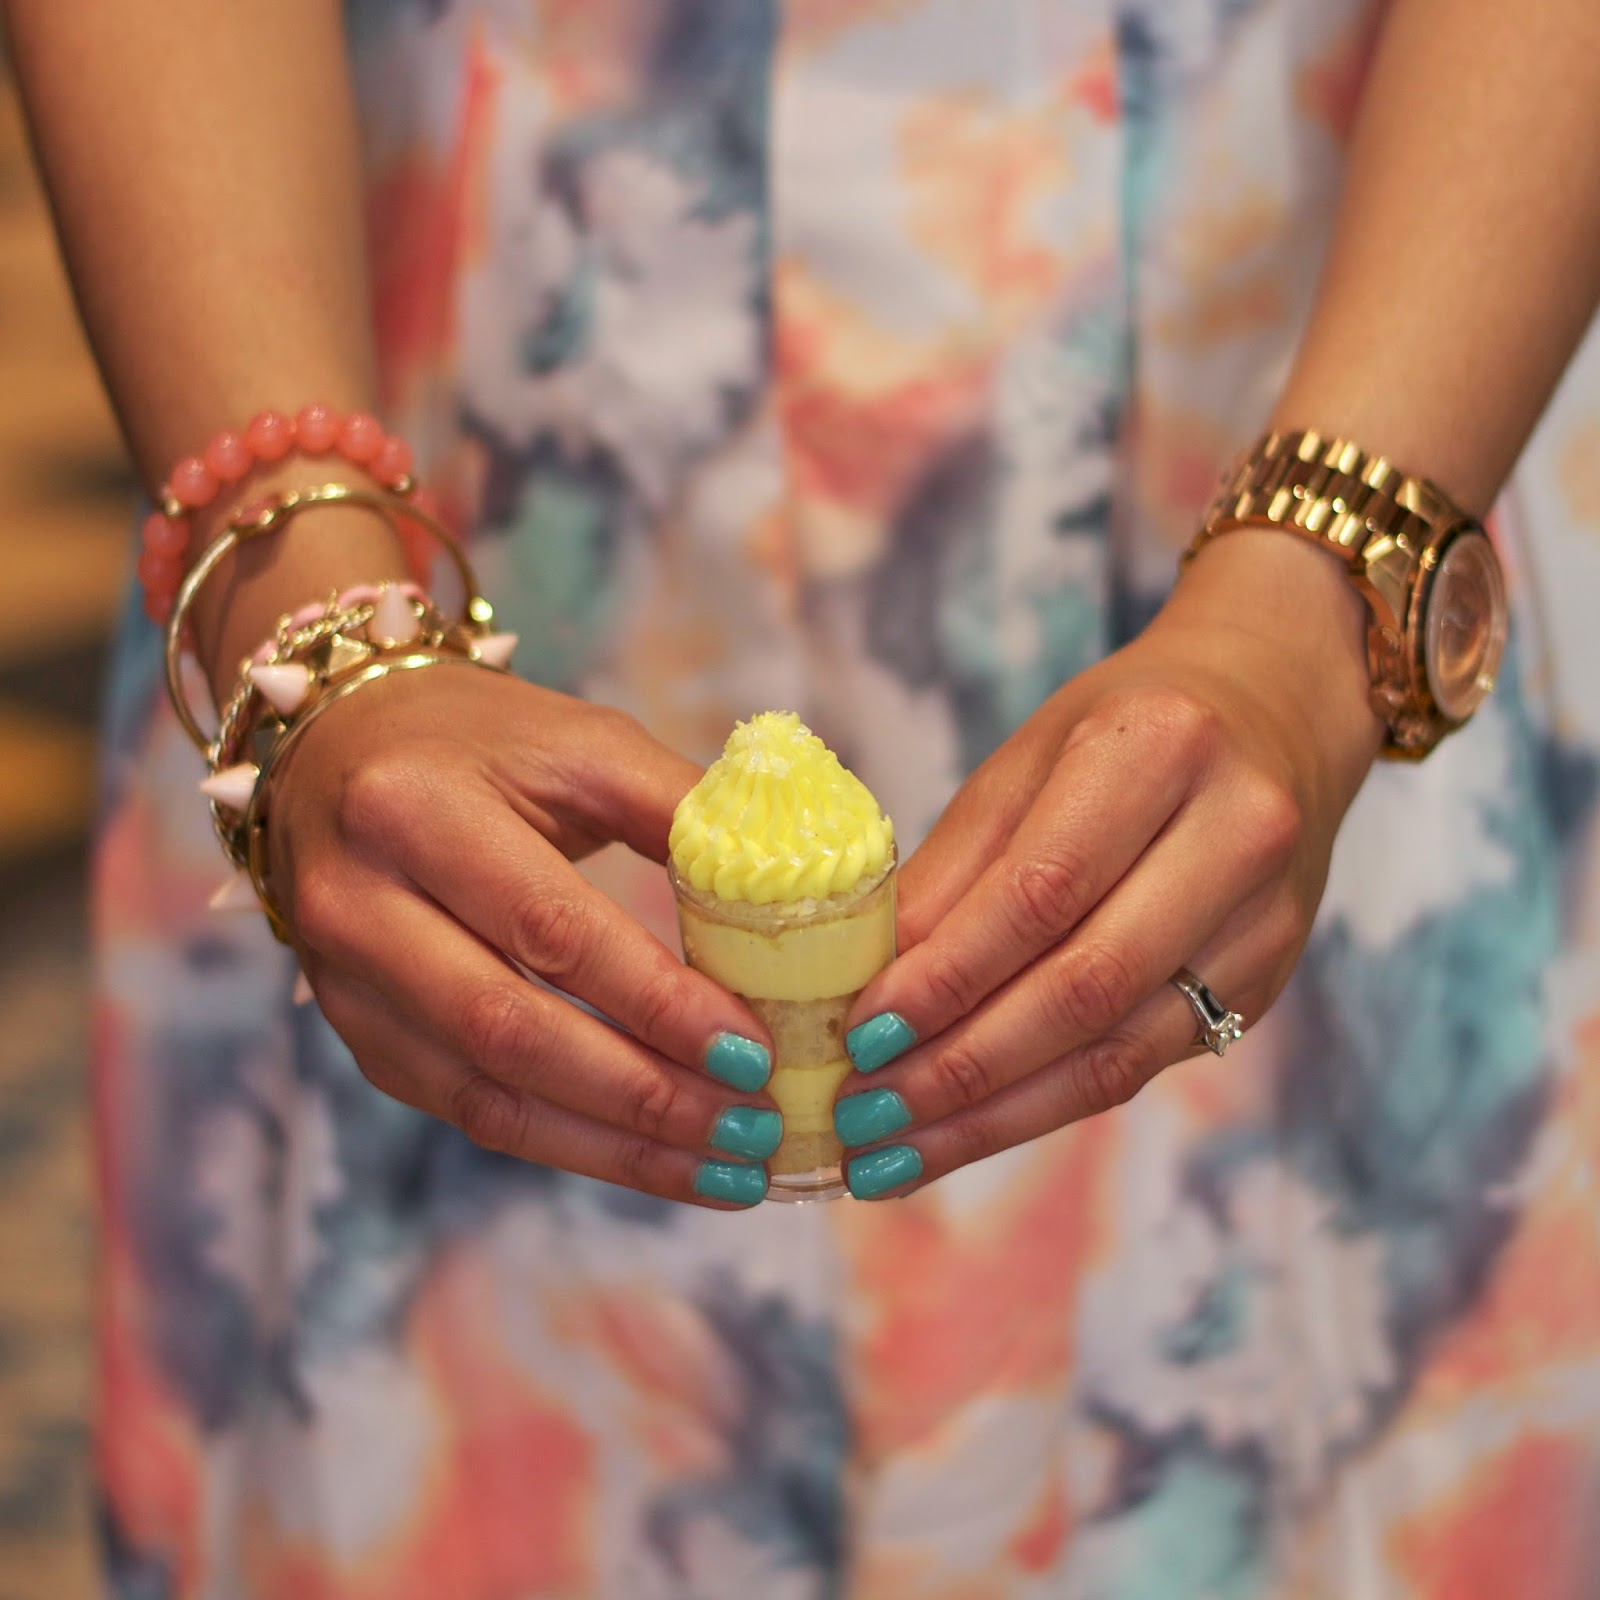 lemon cupcakes, yummy cupcakes sd, yummy cupcakes in San Diego, cute accessories, arm party, girly arm party, best arm parties on bloggers